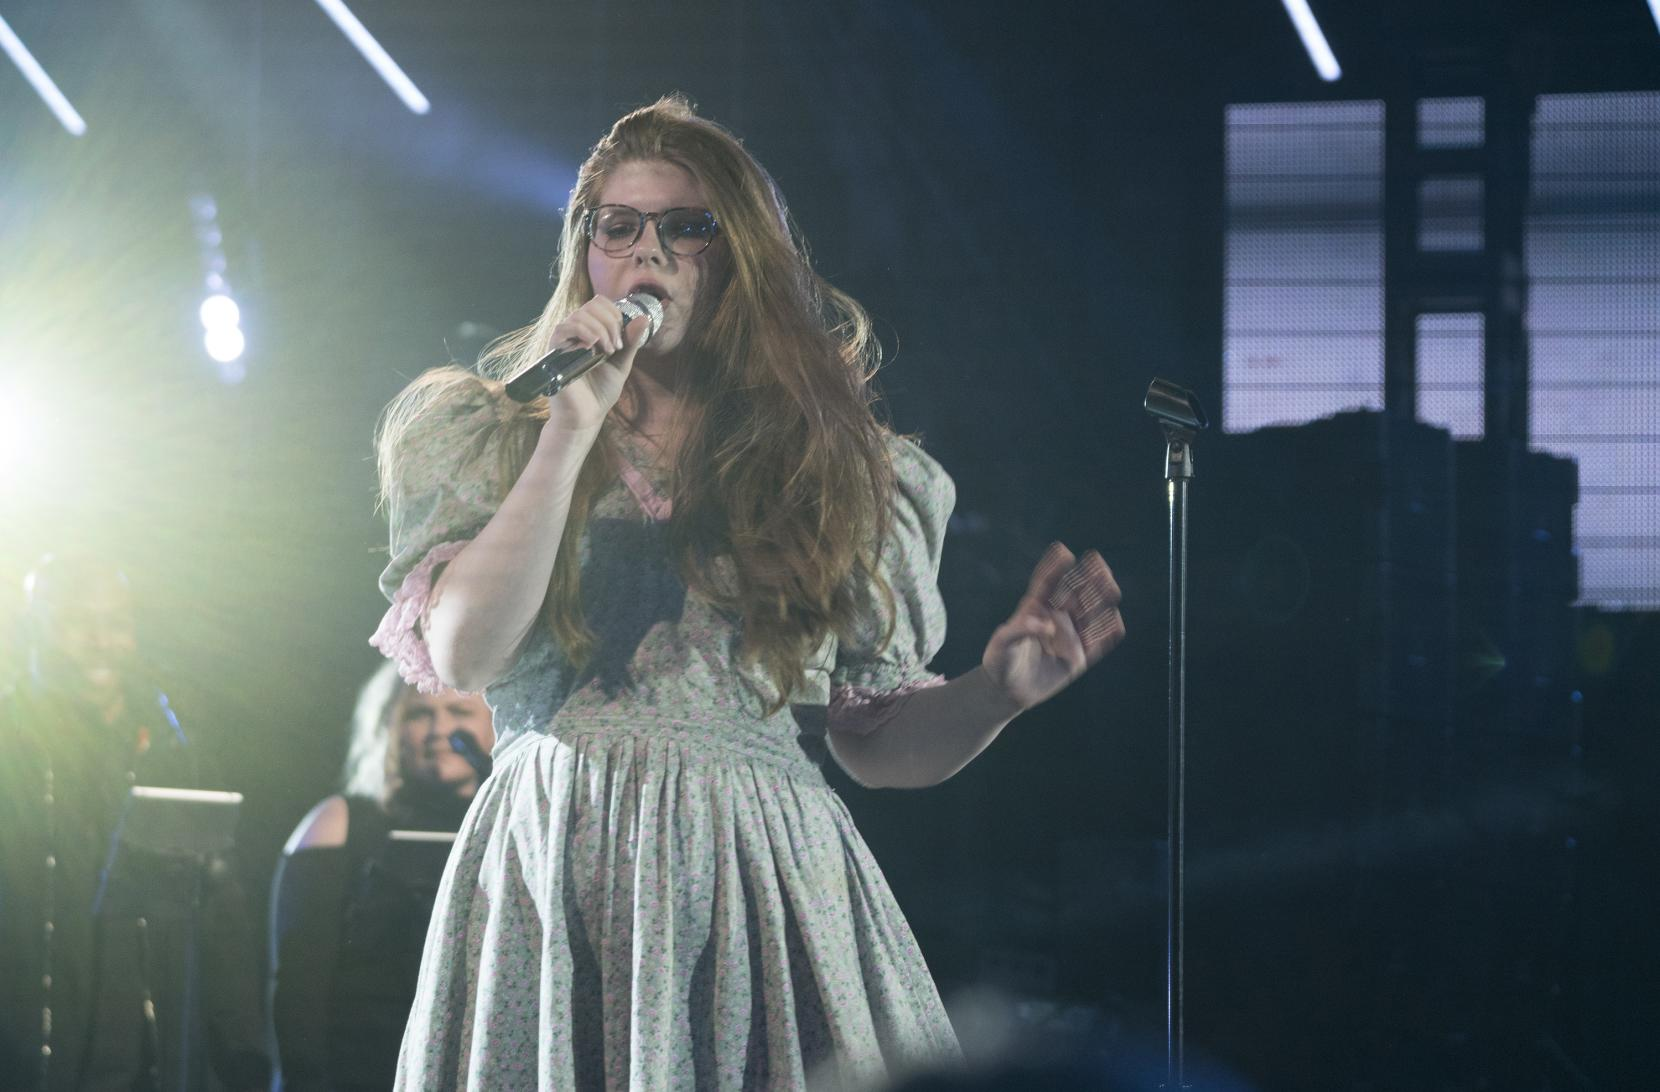 Get to Know: 'American Idol' Contestant Catie Turner